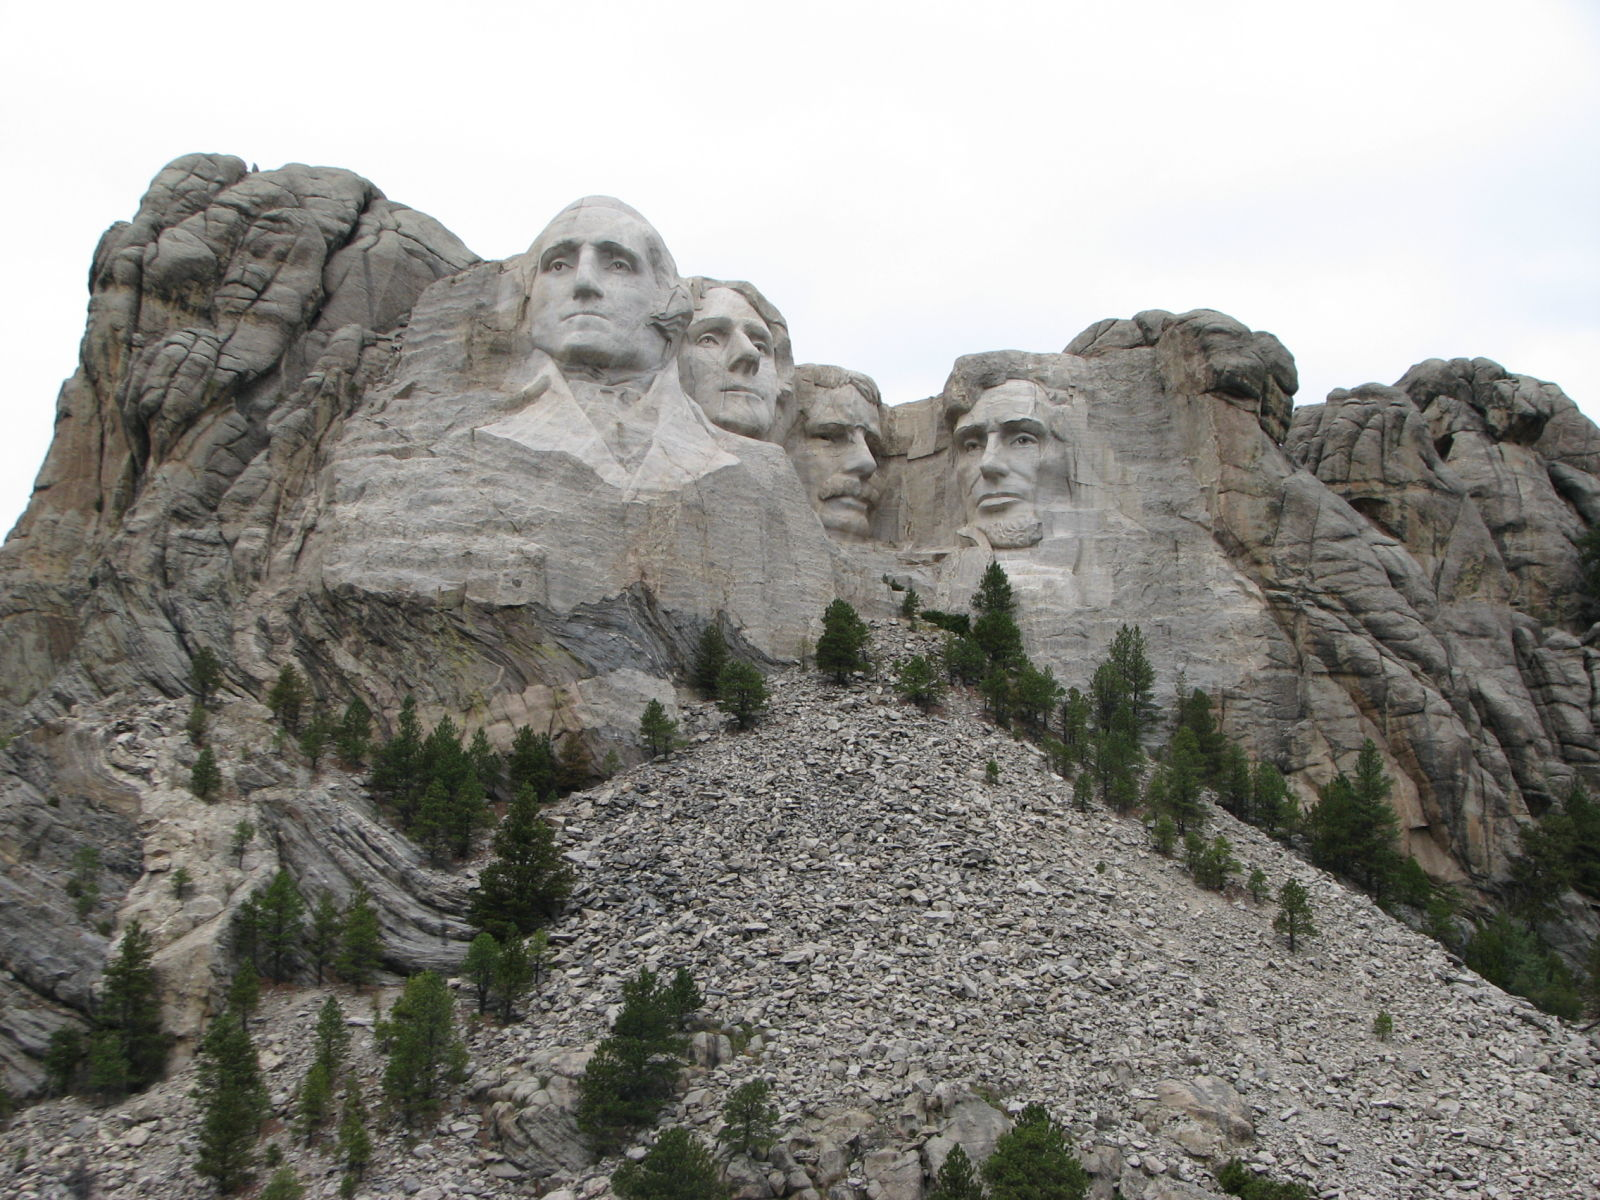 Mount rushmore national memorial for Mount rushmore history facts